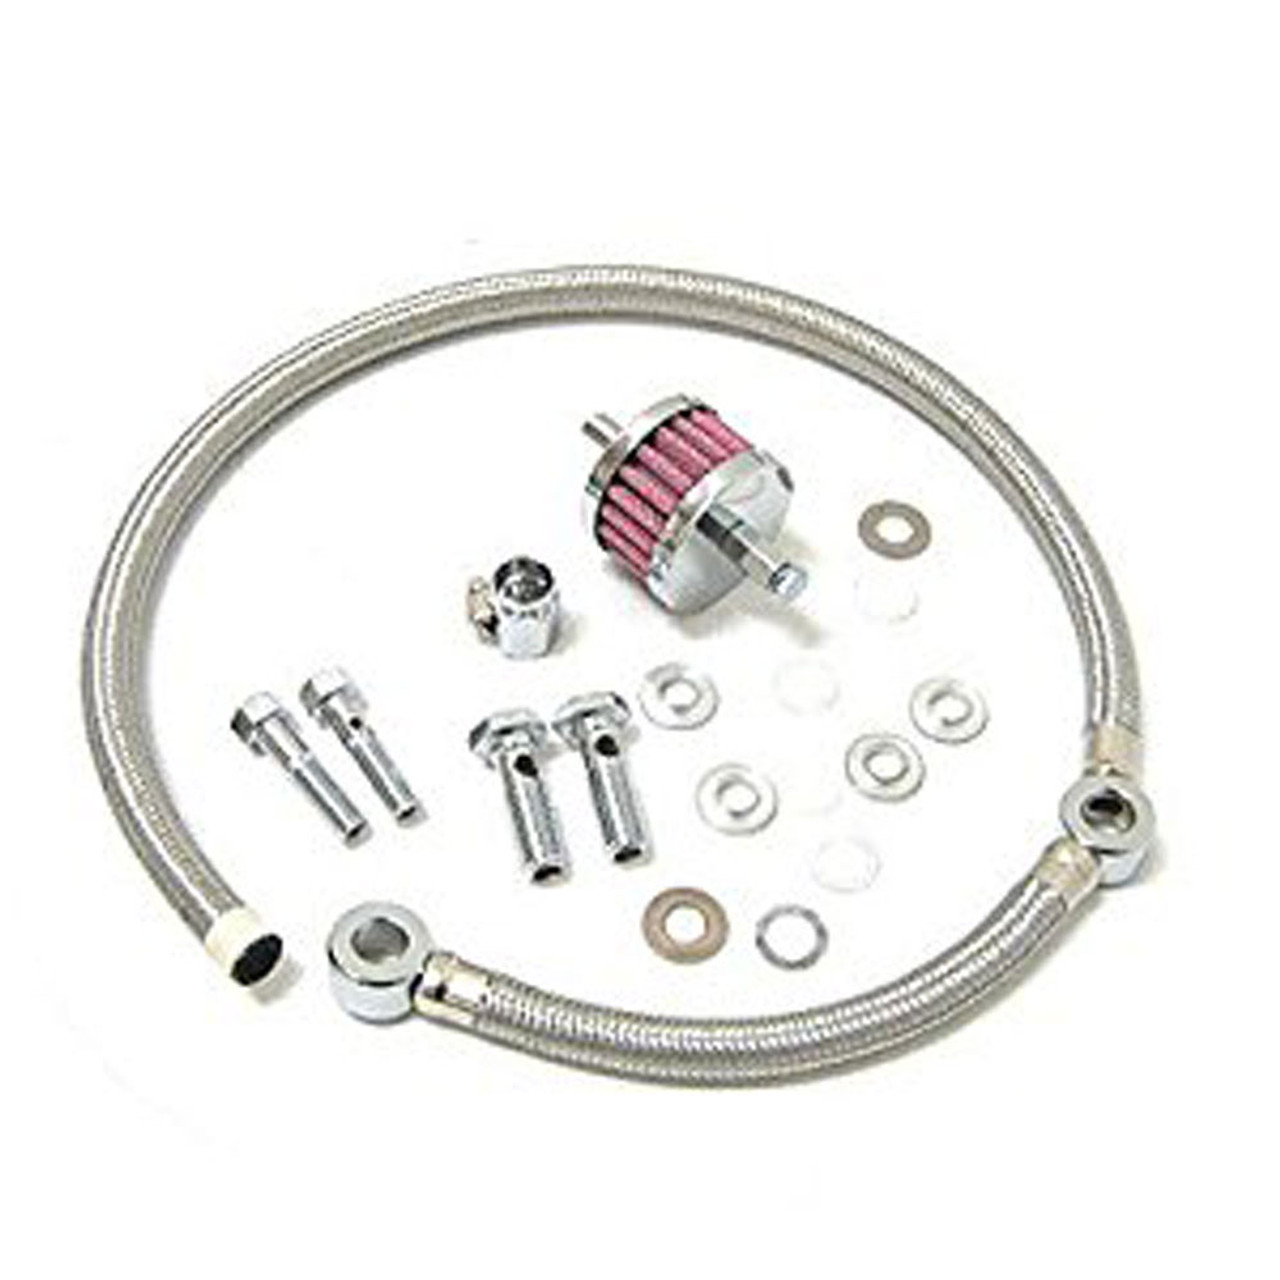 Drag Specialties Braided Hose Crankcase Breather Kit for